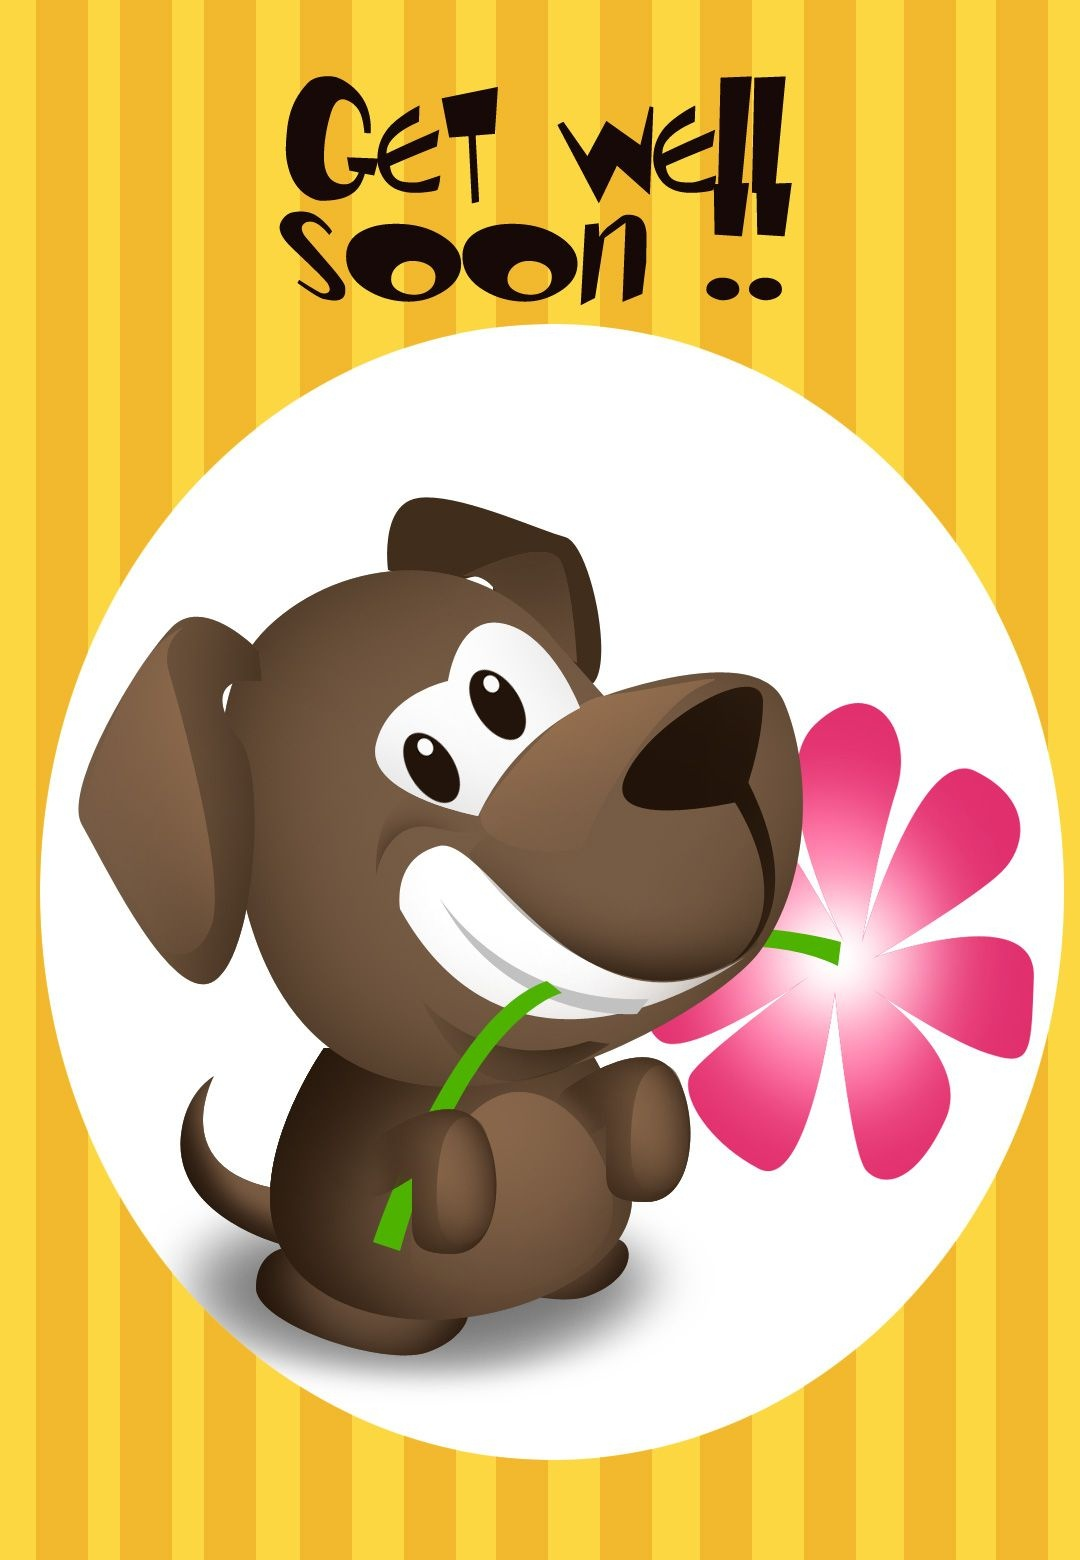 Get Well Soon Puppy Greeting Card | * Prenten 18/ Beterschap - Sterkte * - Free Printable Get Well Soon Cards